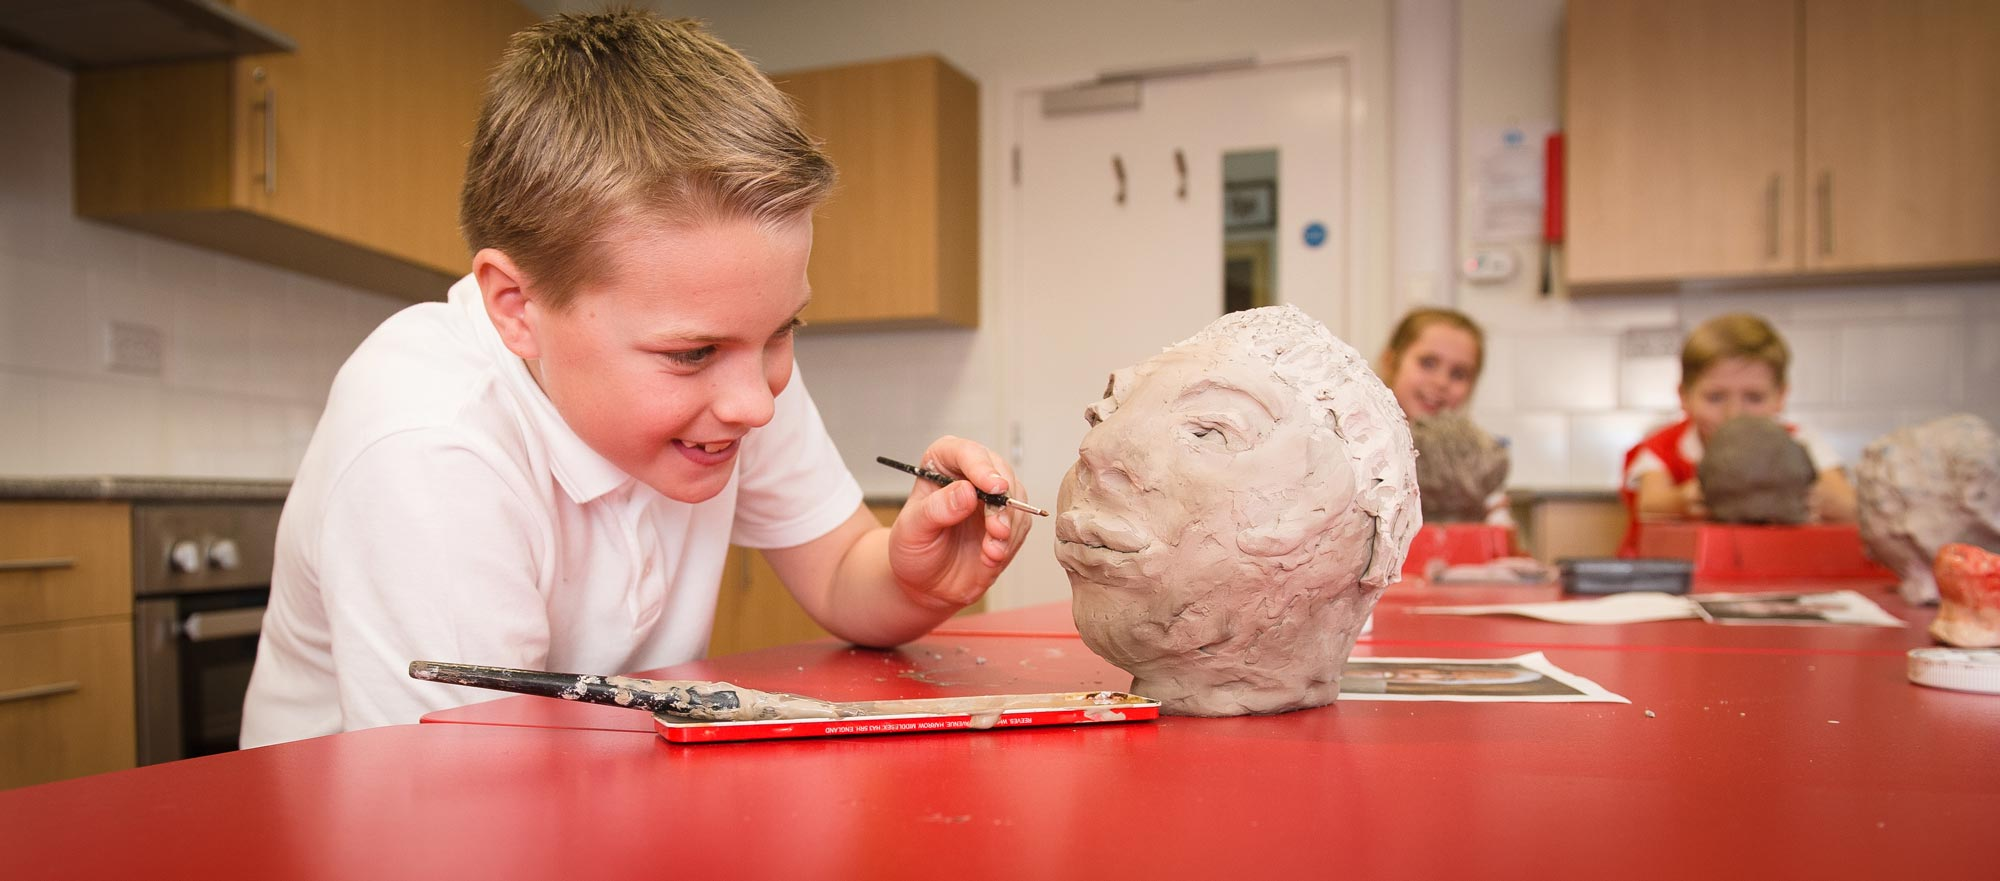 Boy adding detail to his clay sculpture